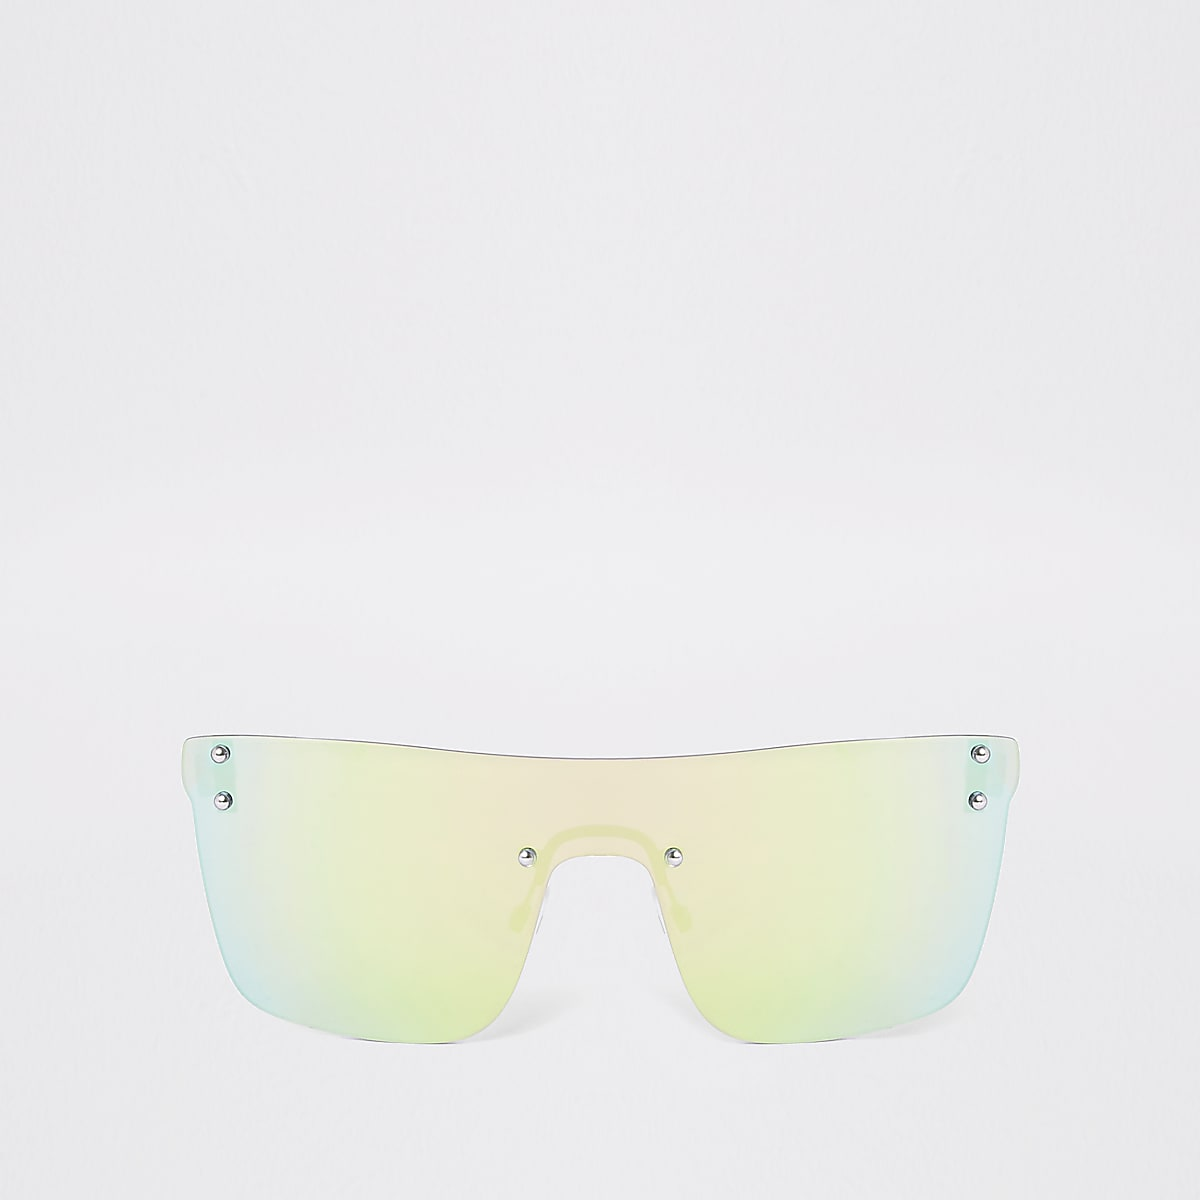 Grey mirrored visor sunglasses